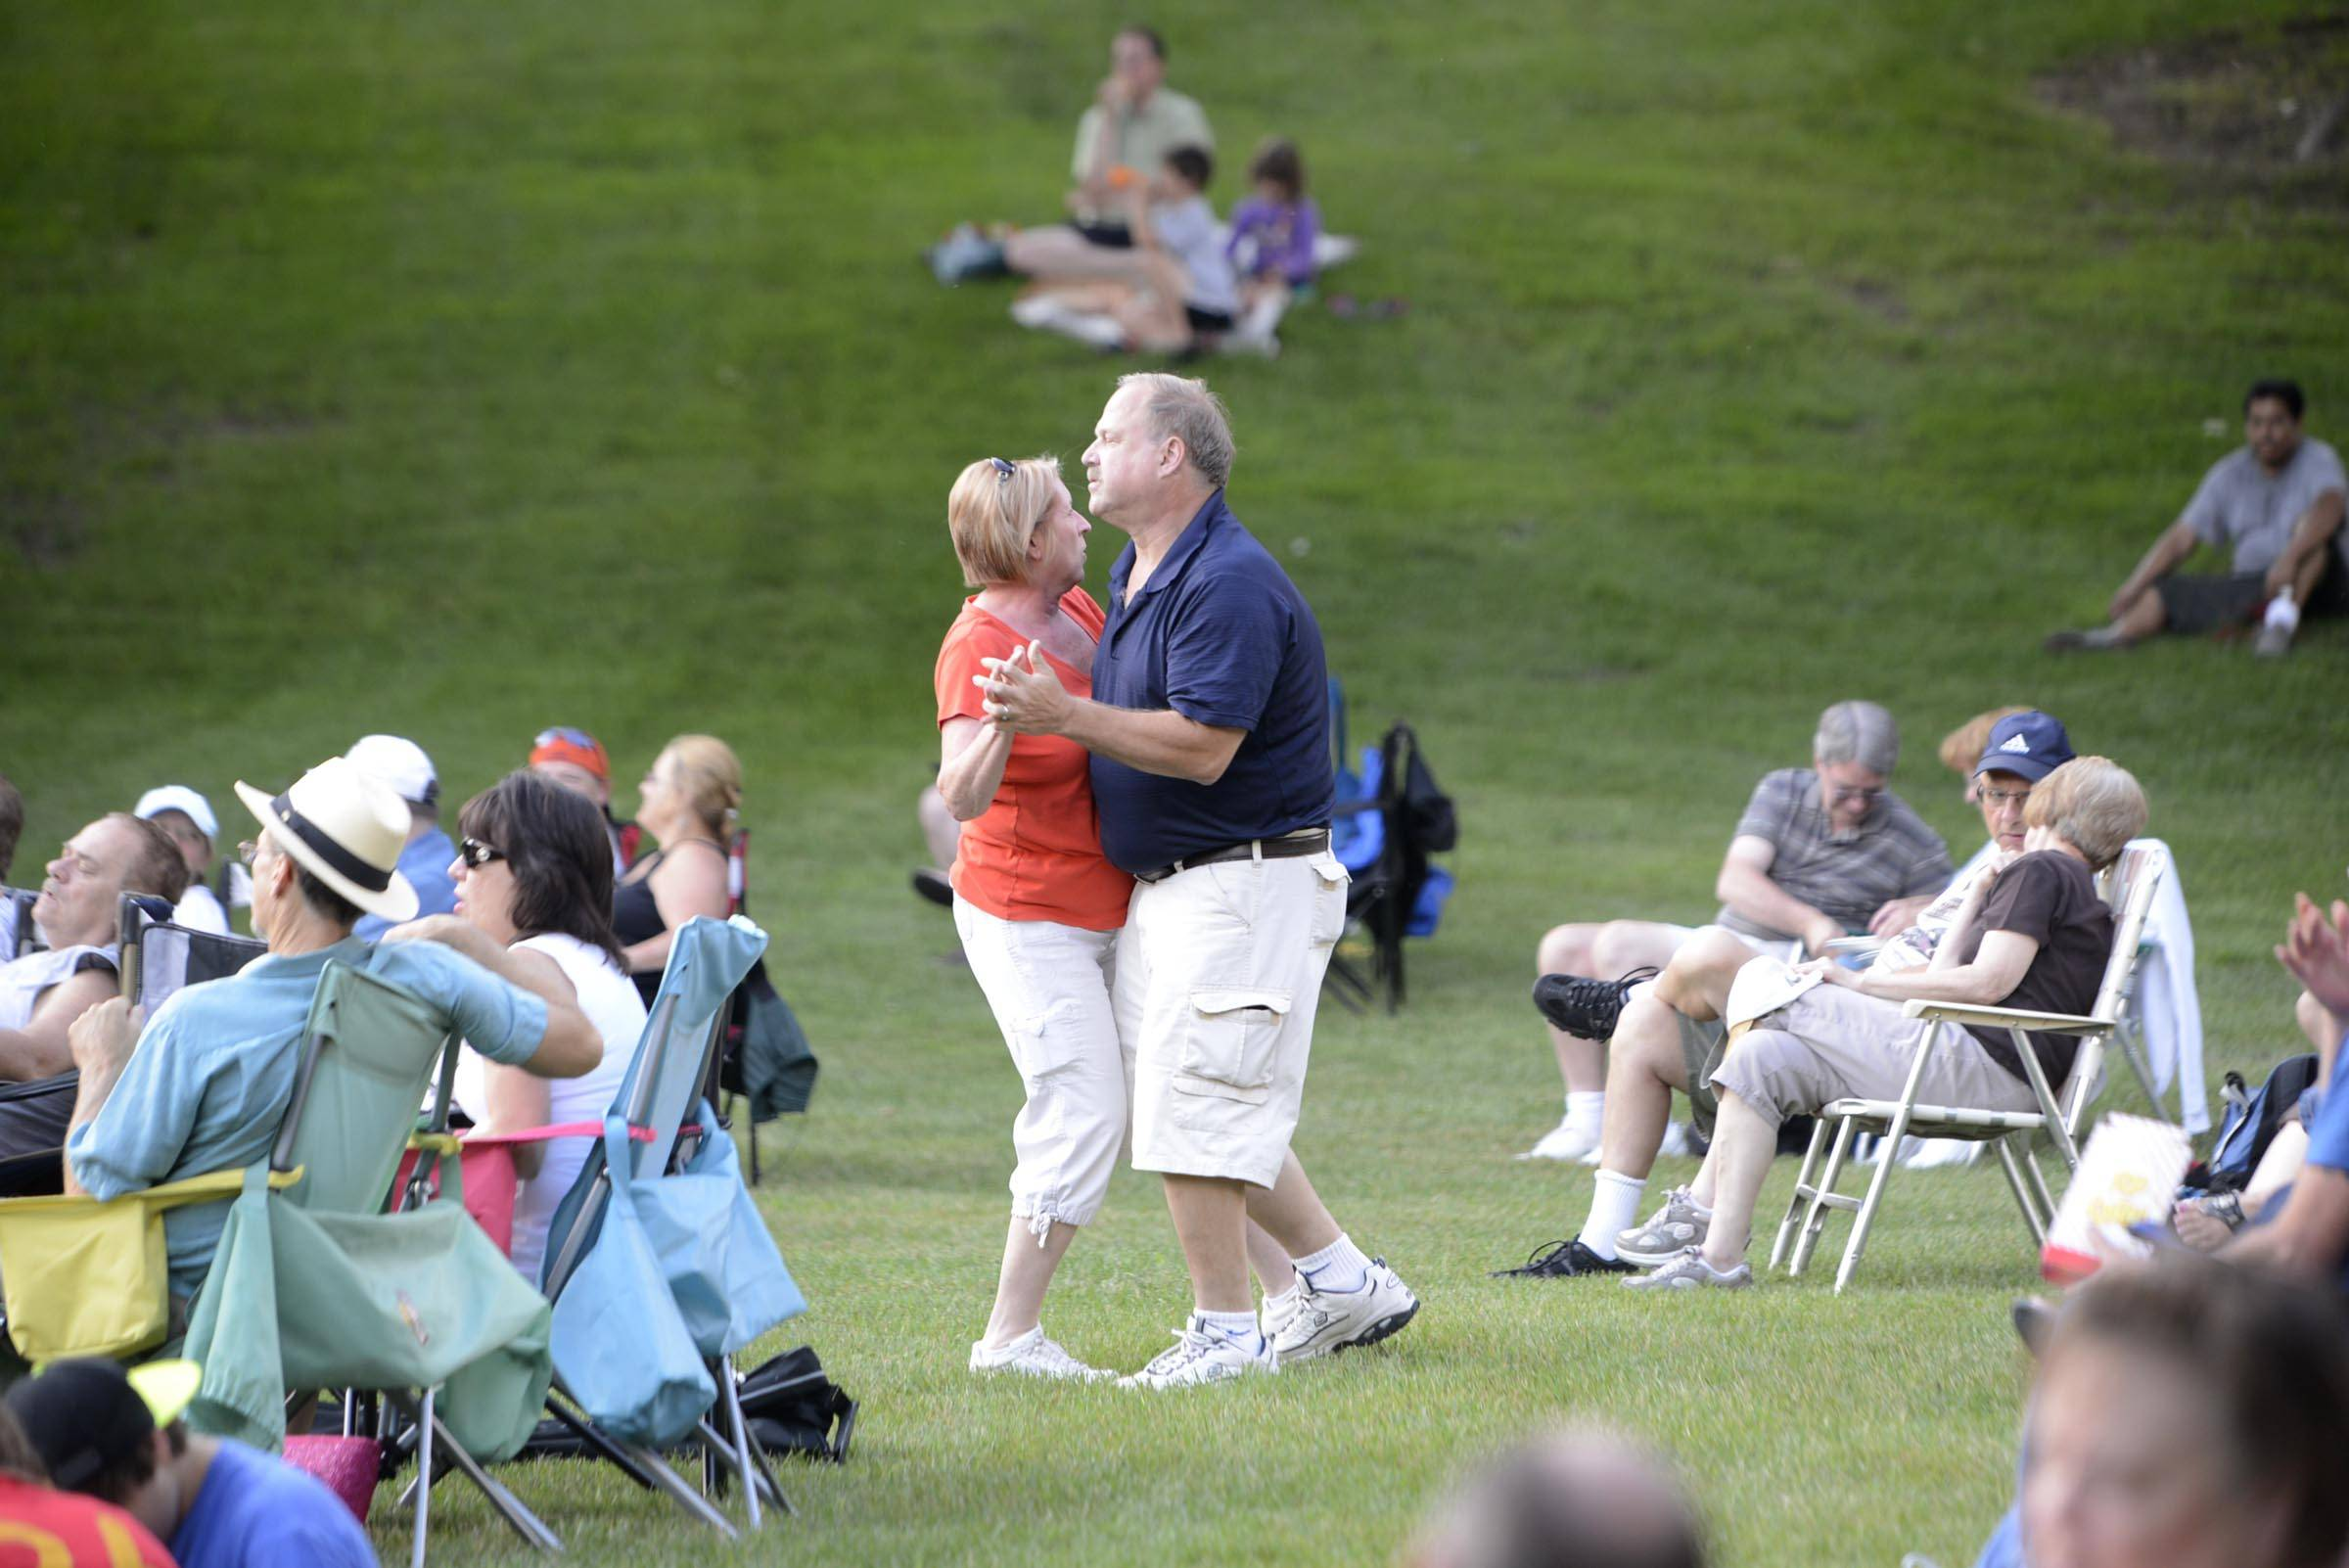 John and Dottie Schmitz of South Elgin dance among the crowd Tuesday in Wing Park while the R Gang band performs as part of the Elgin Concerts in the Park program.